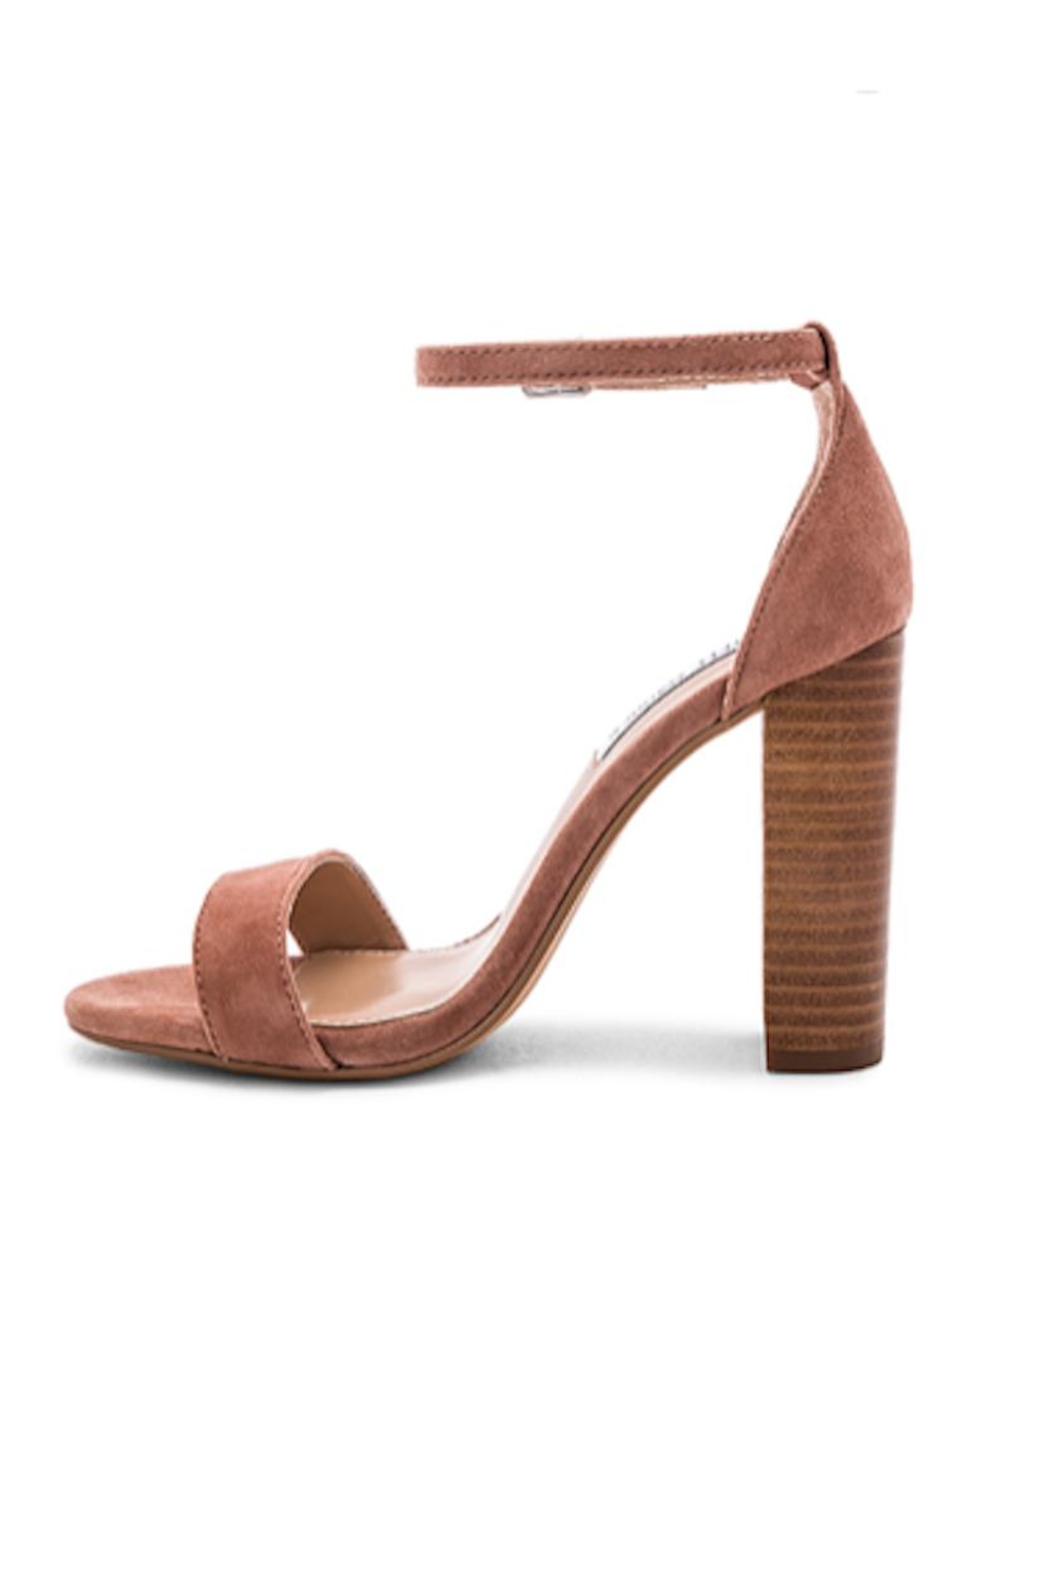 27ae2f0d6c21f3 Steve Madden Carrson Sandal from New Jersey by The House — Shoptiques